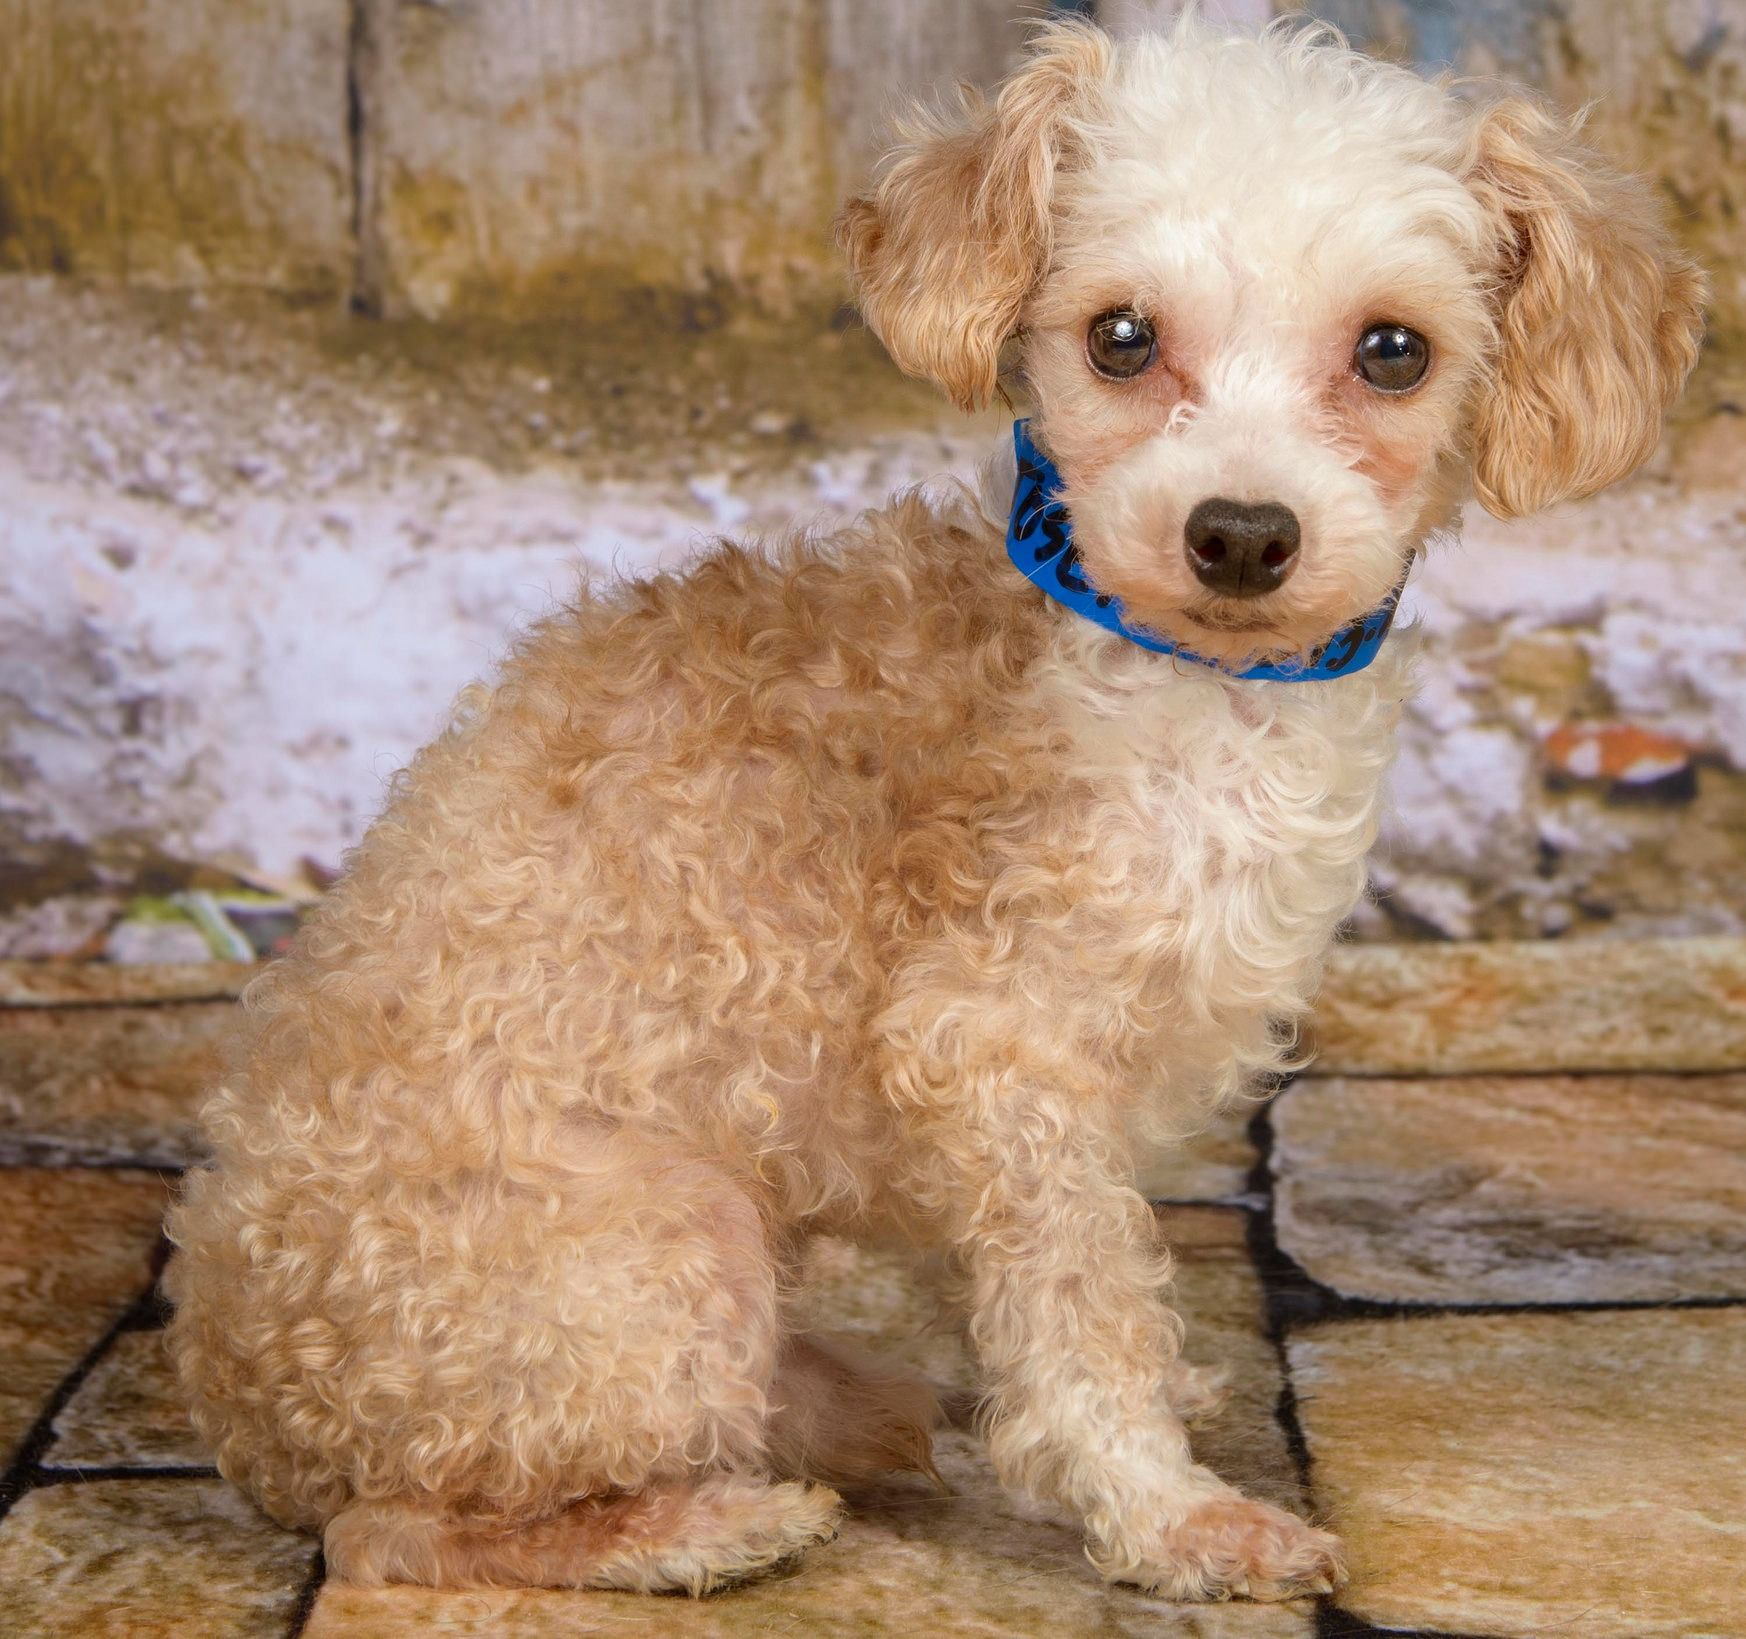 Hermes is a puppy mill survivor who was rescued by